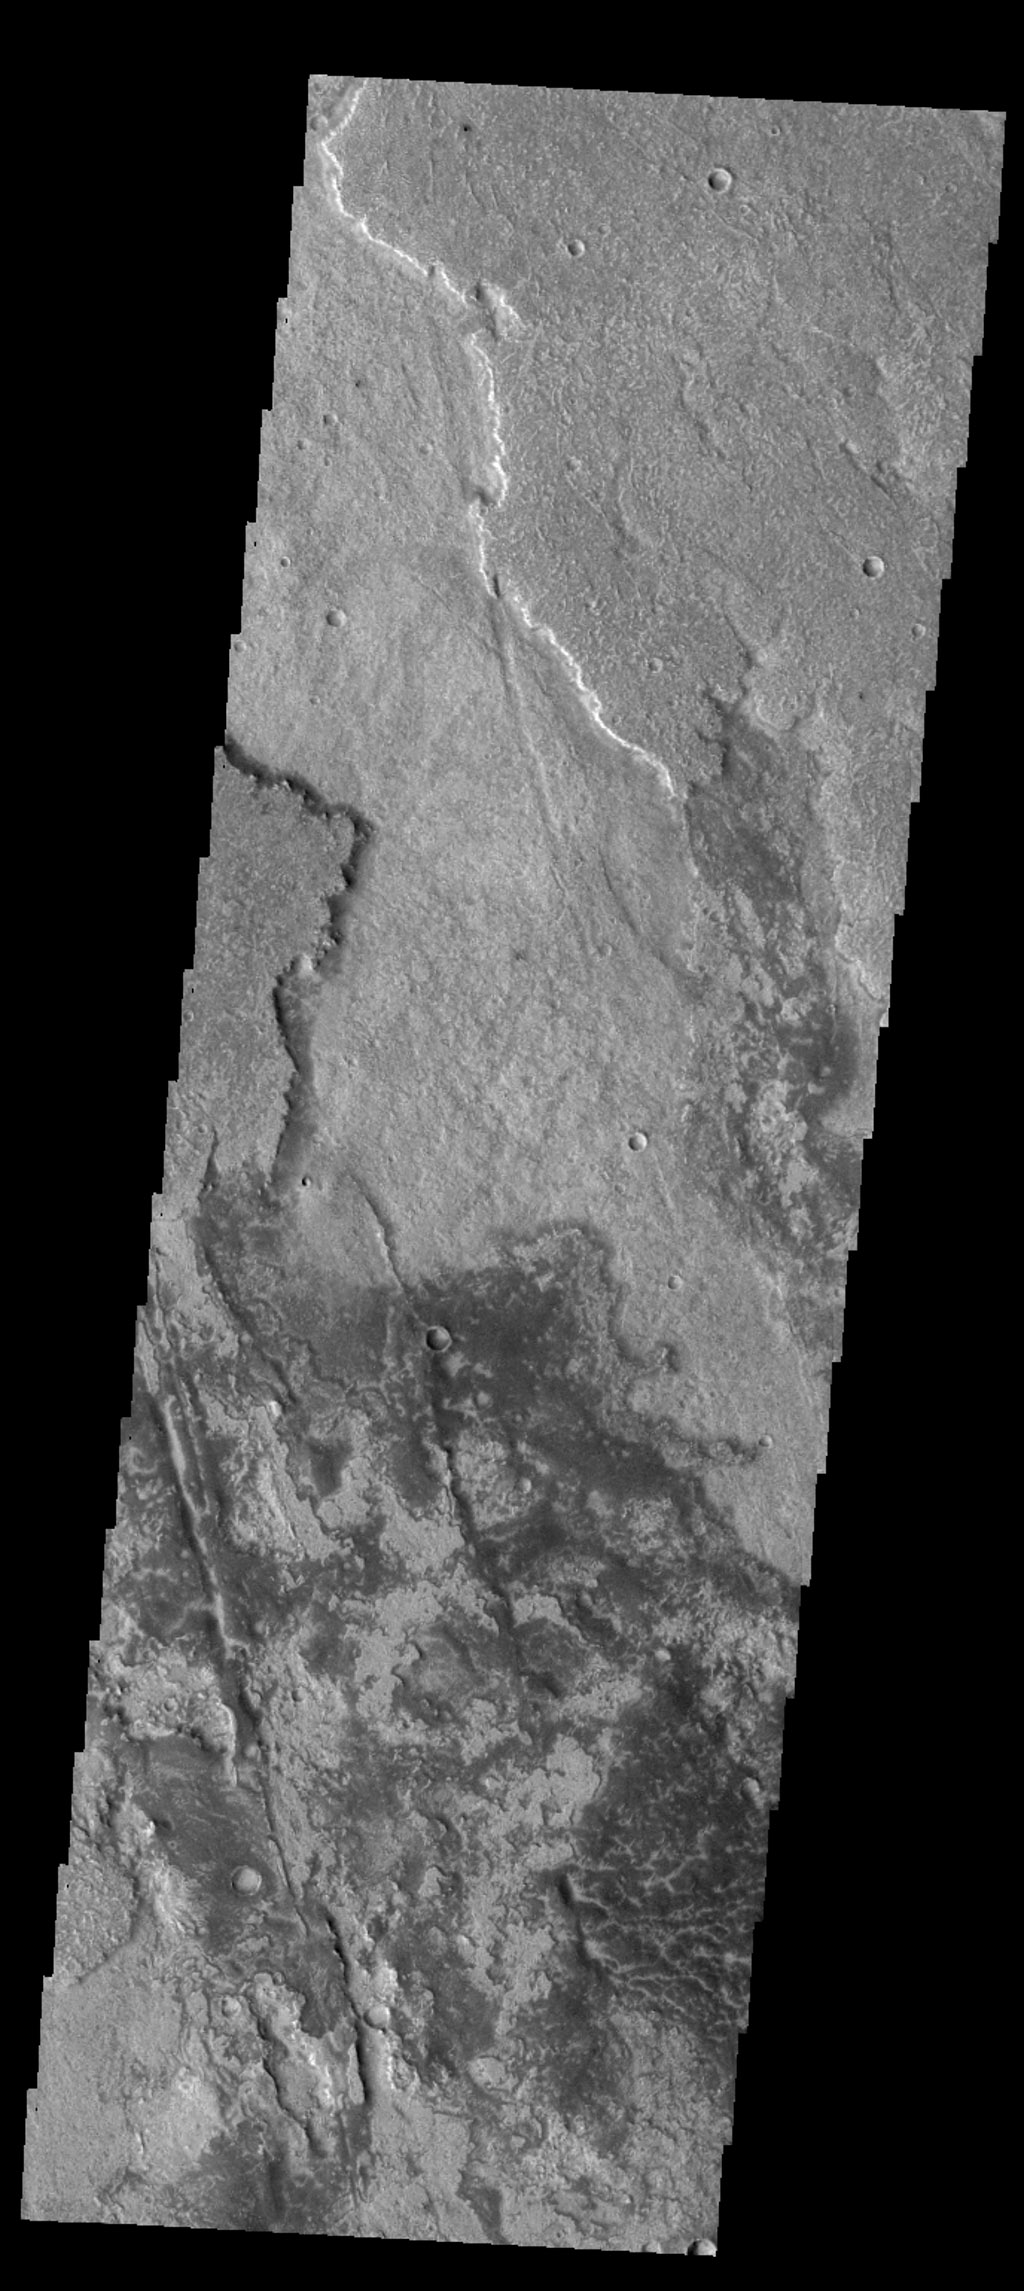 This image captured by NASA's 2001 Mars Odyssey spacecraft shows a small portion of the lava flows of Solis Planum.